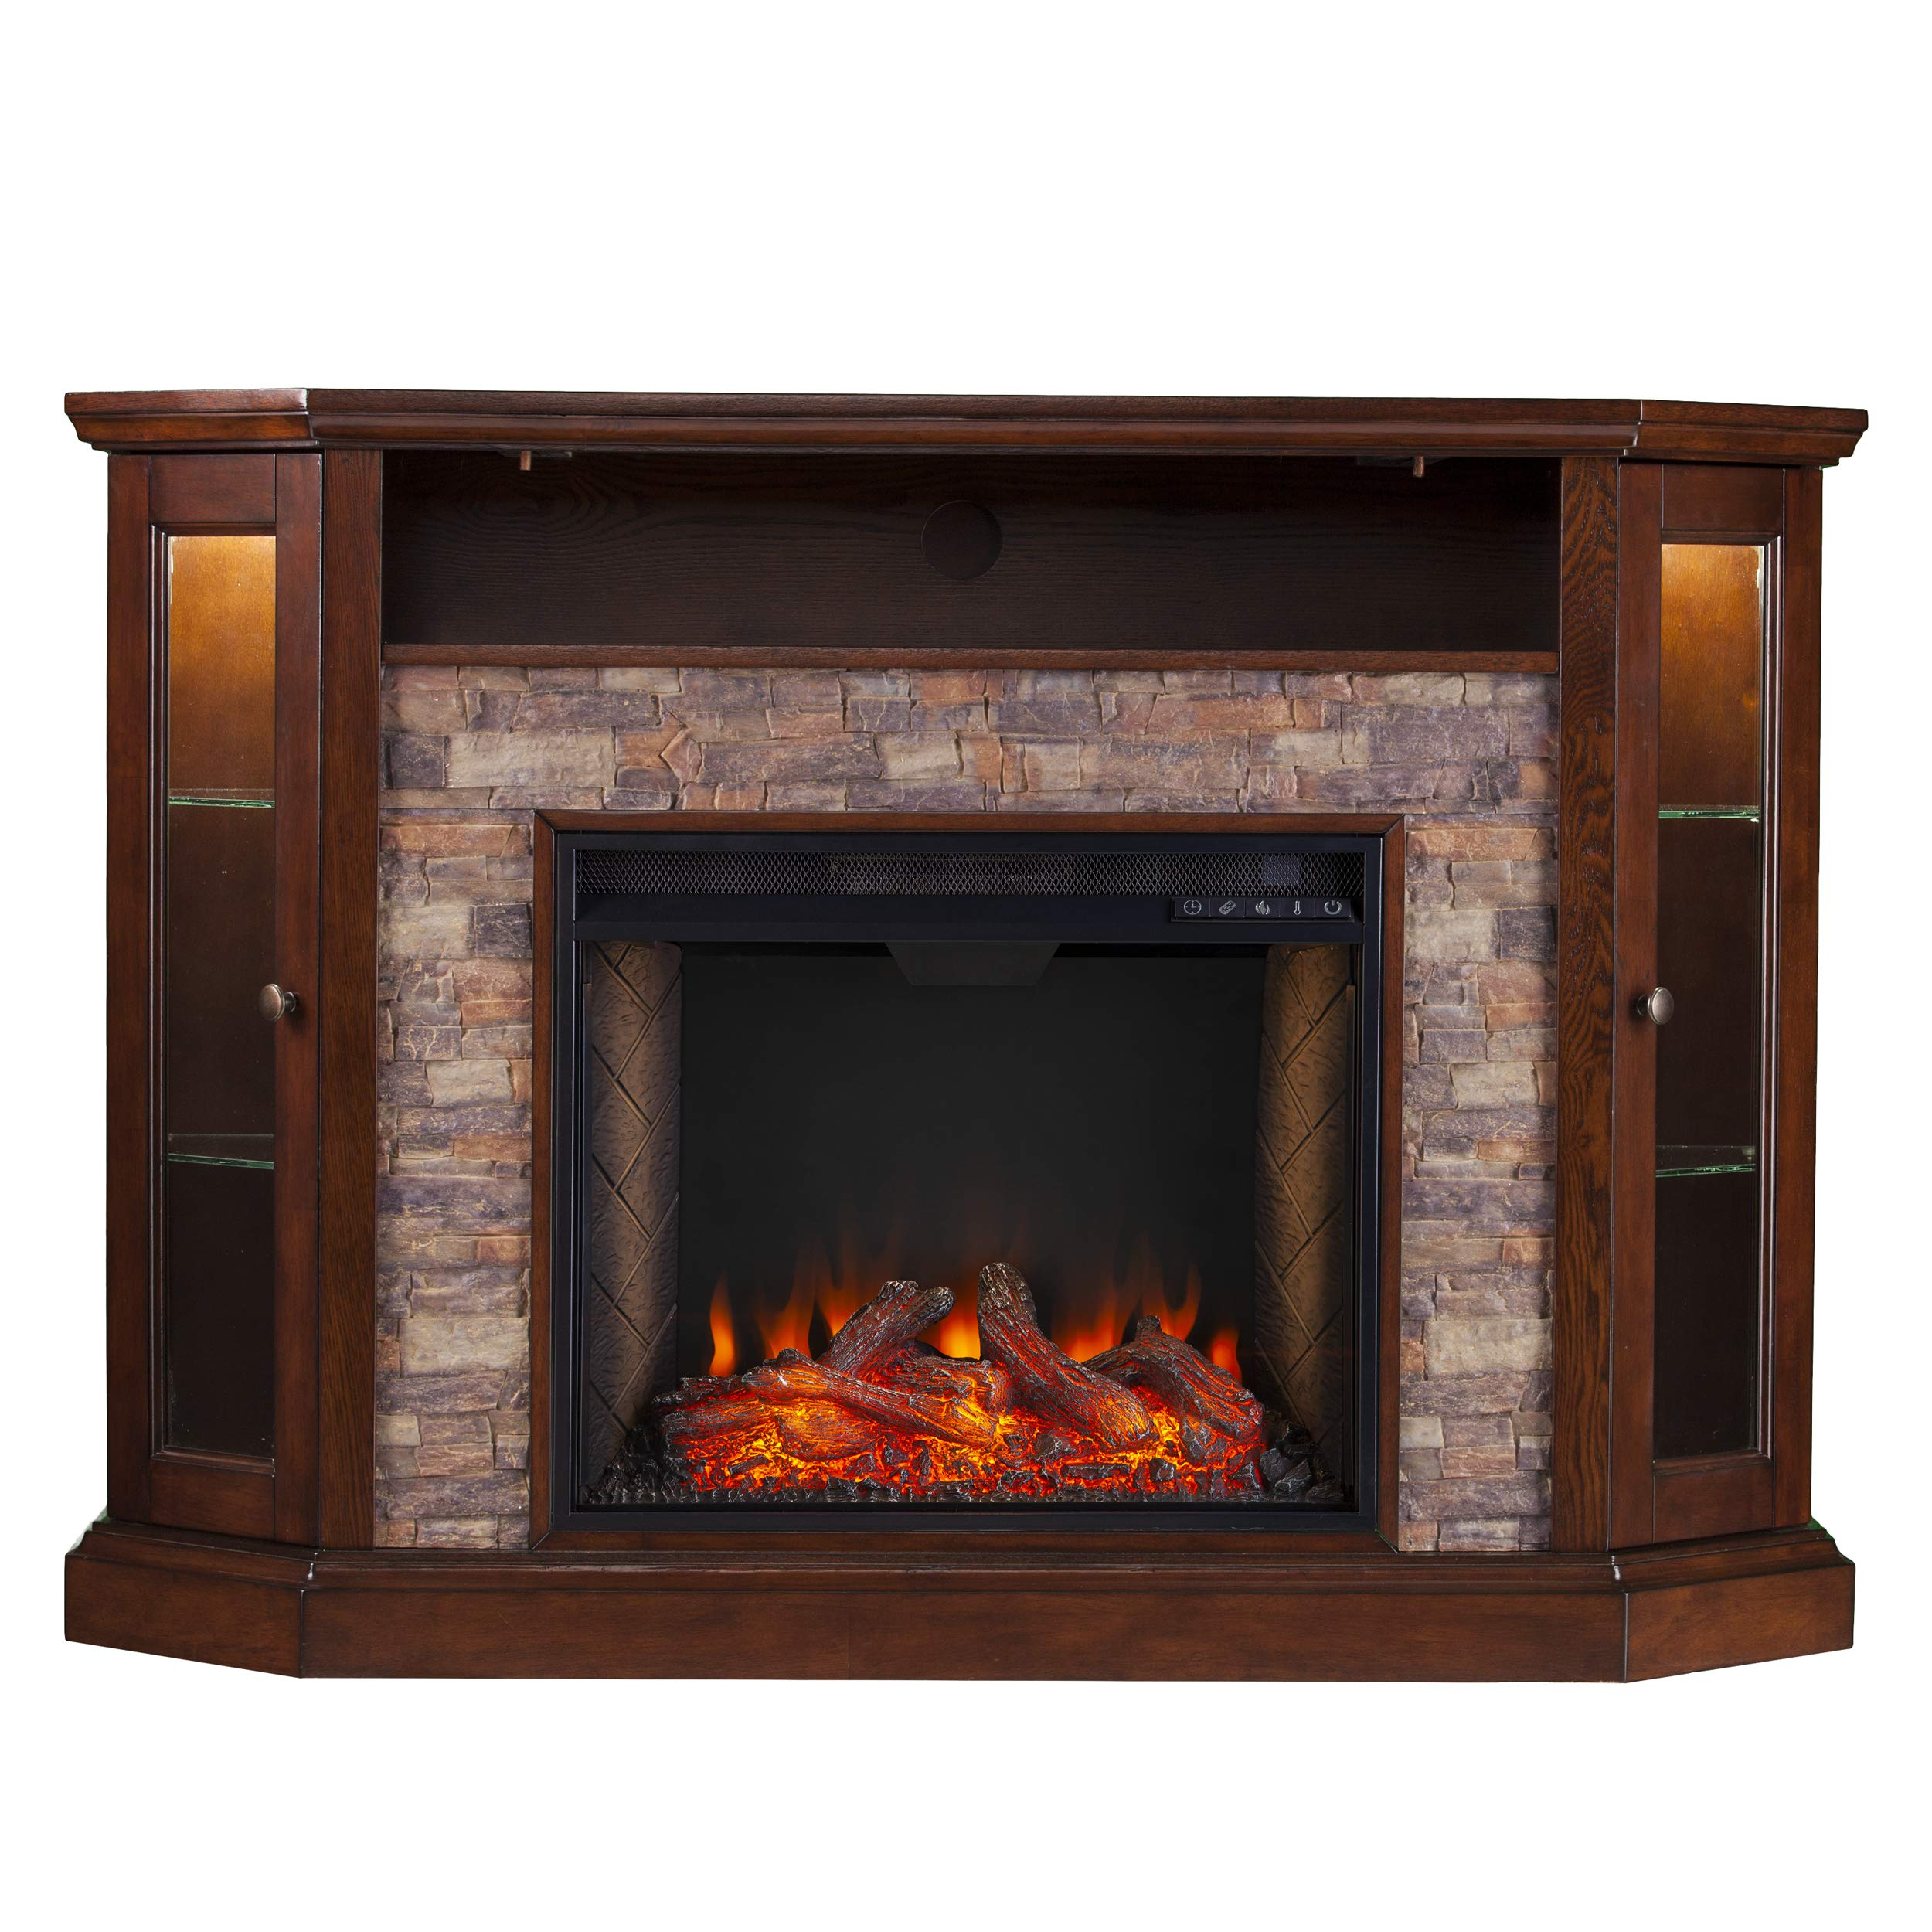 Southern Enterprises Convertible Alexa Enabled Fireplace